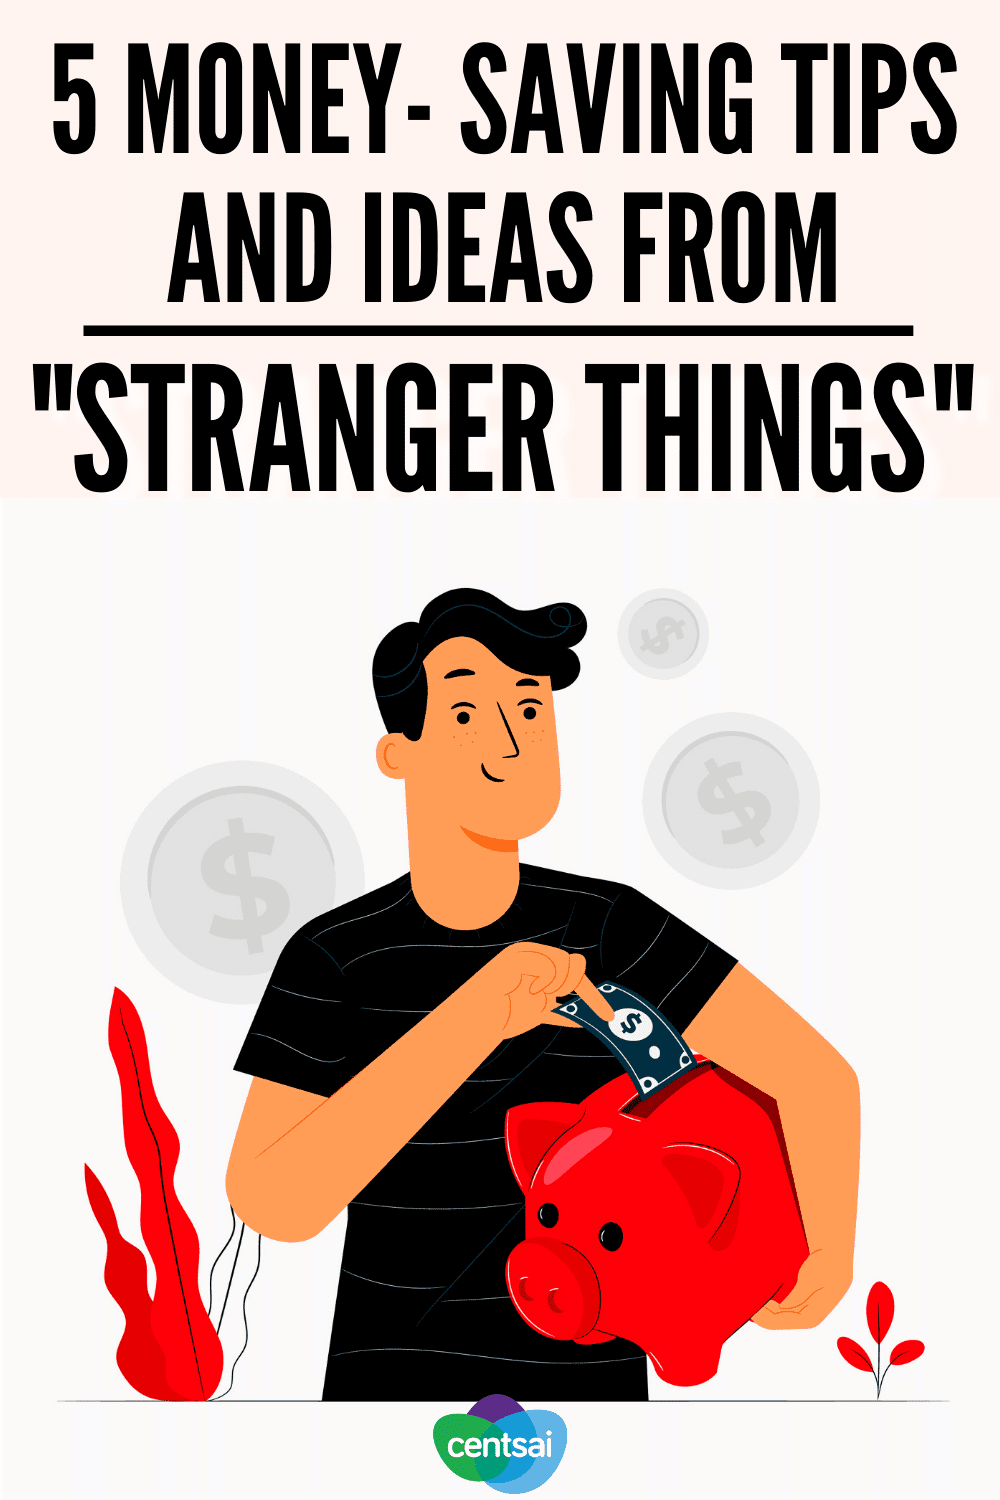 5 money saving tips and ideas from'stranger things'